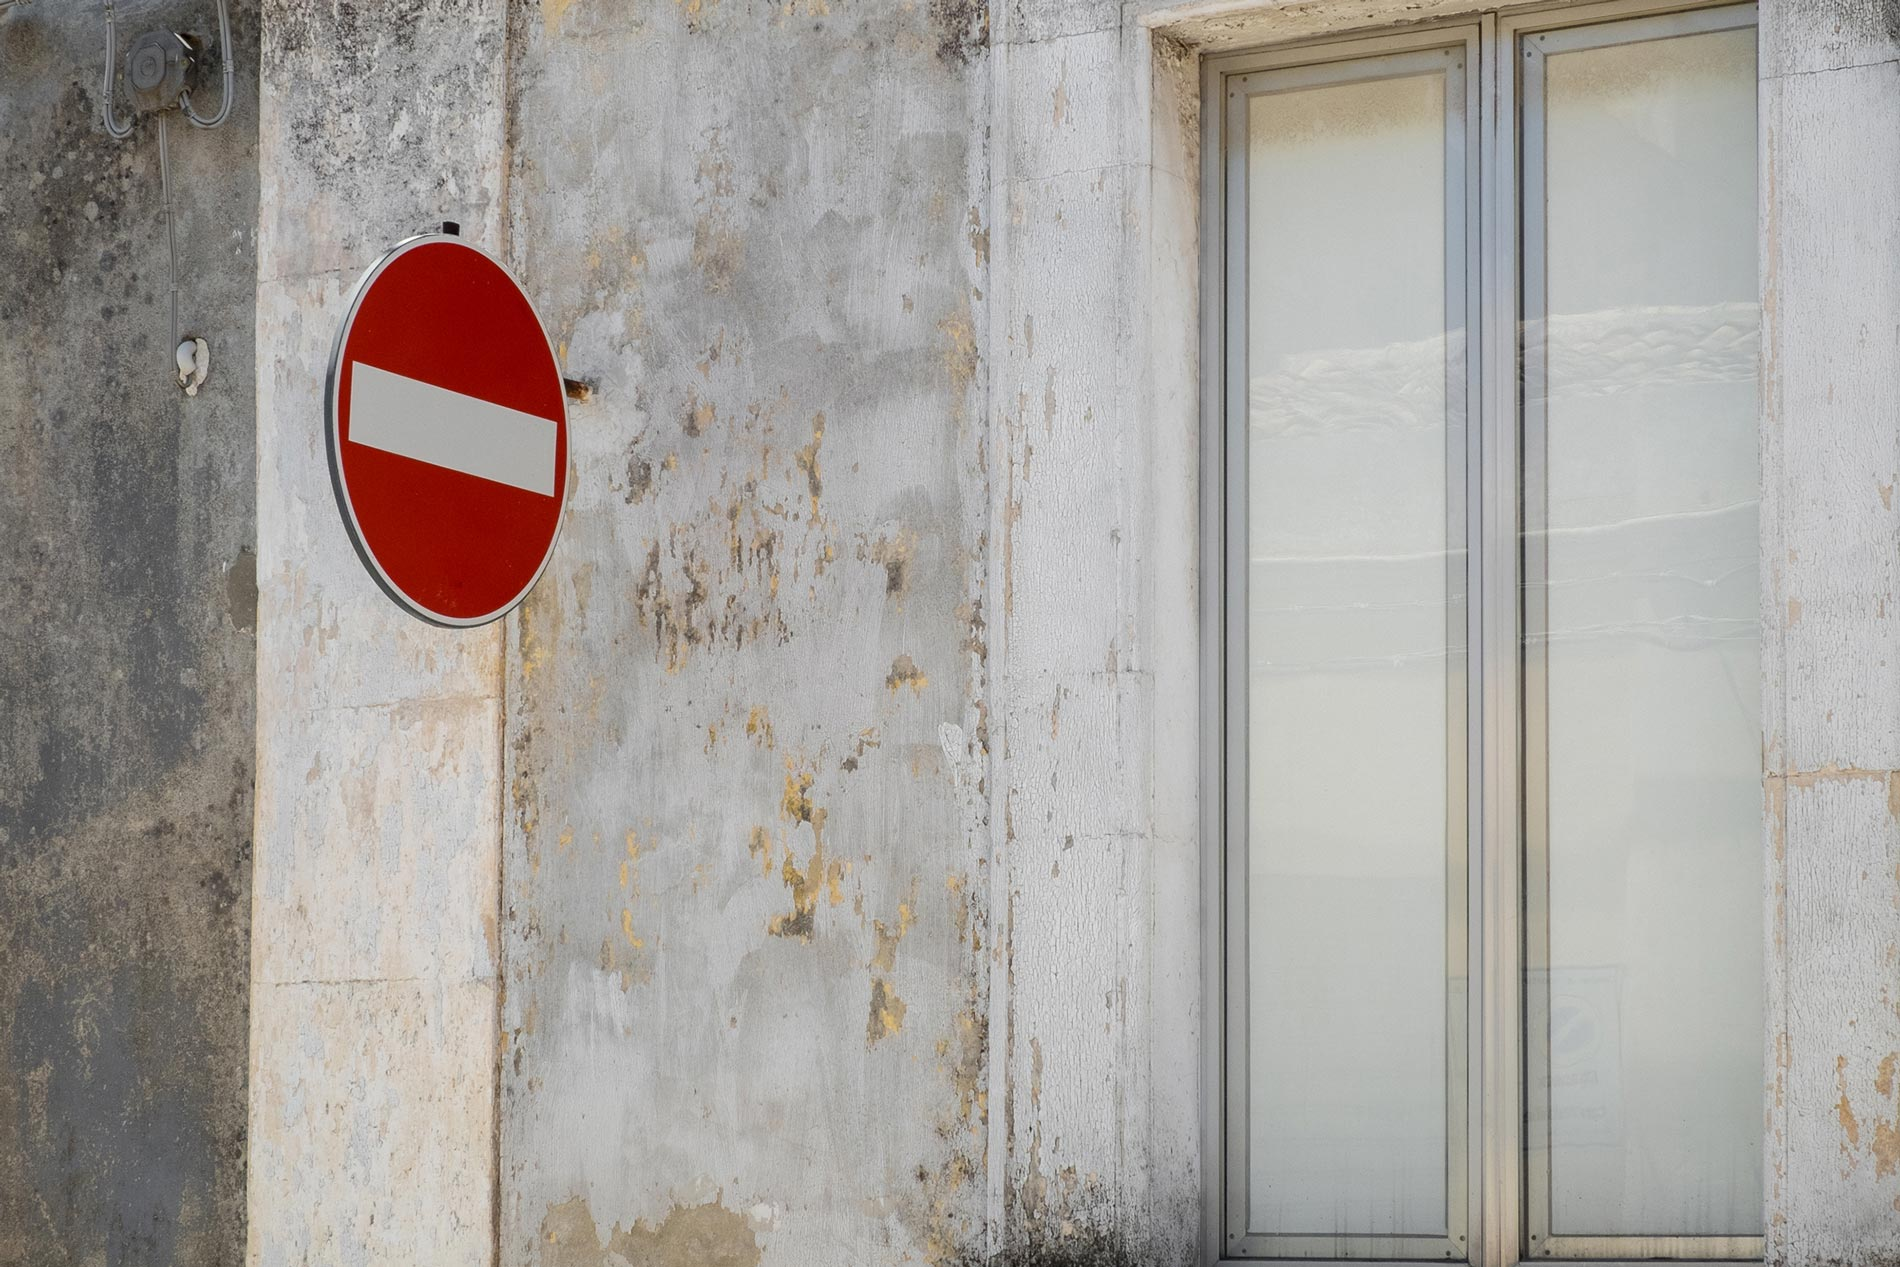 White wall and sign - Floridia, Sicily